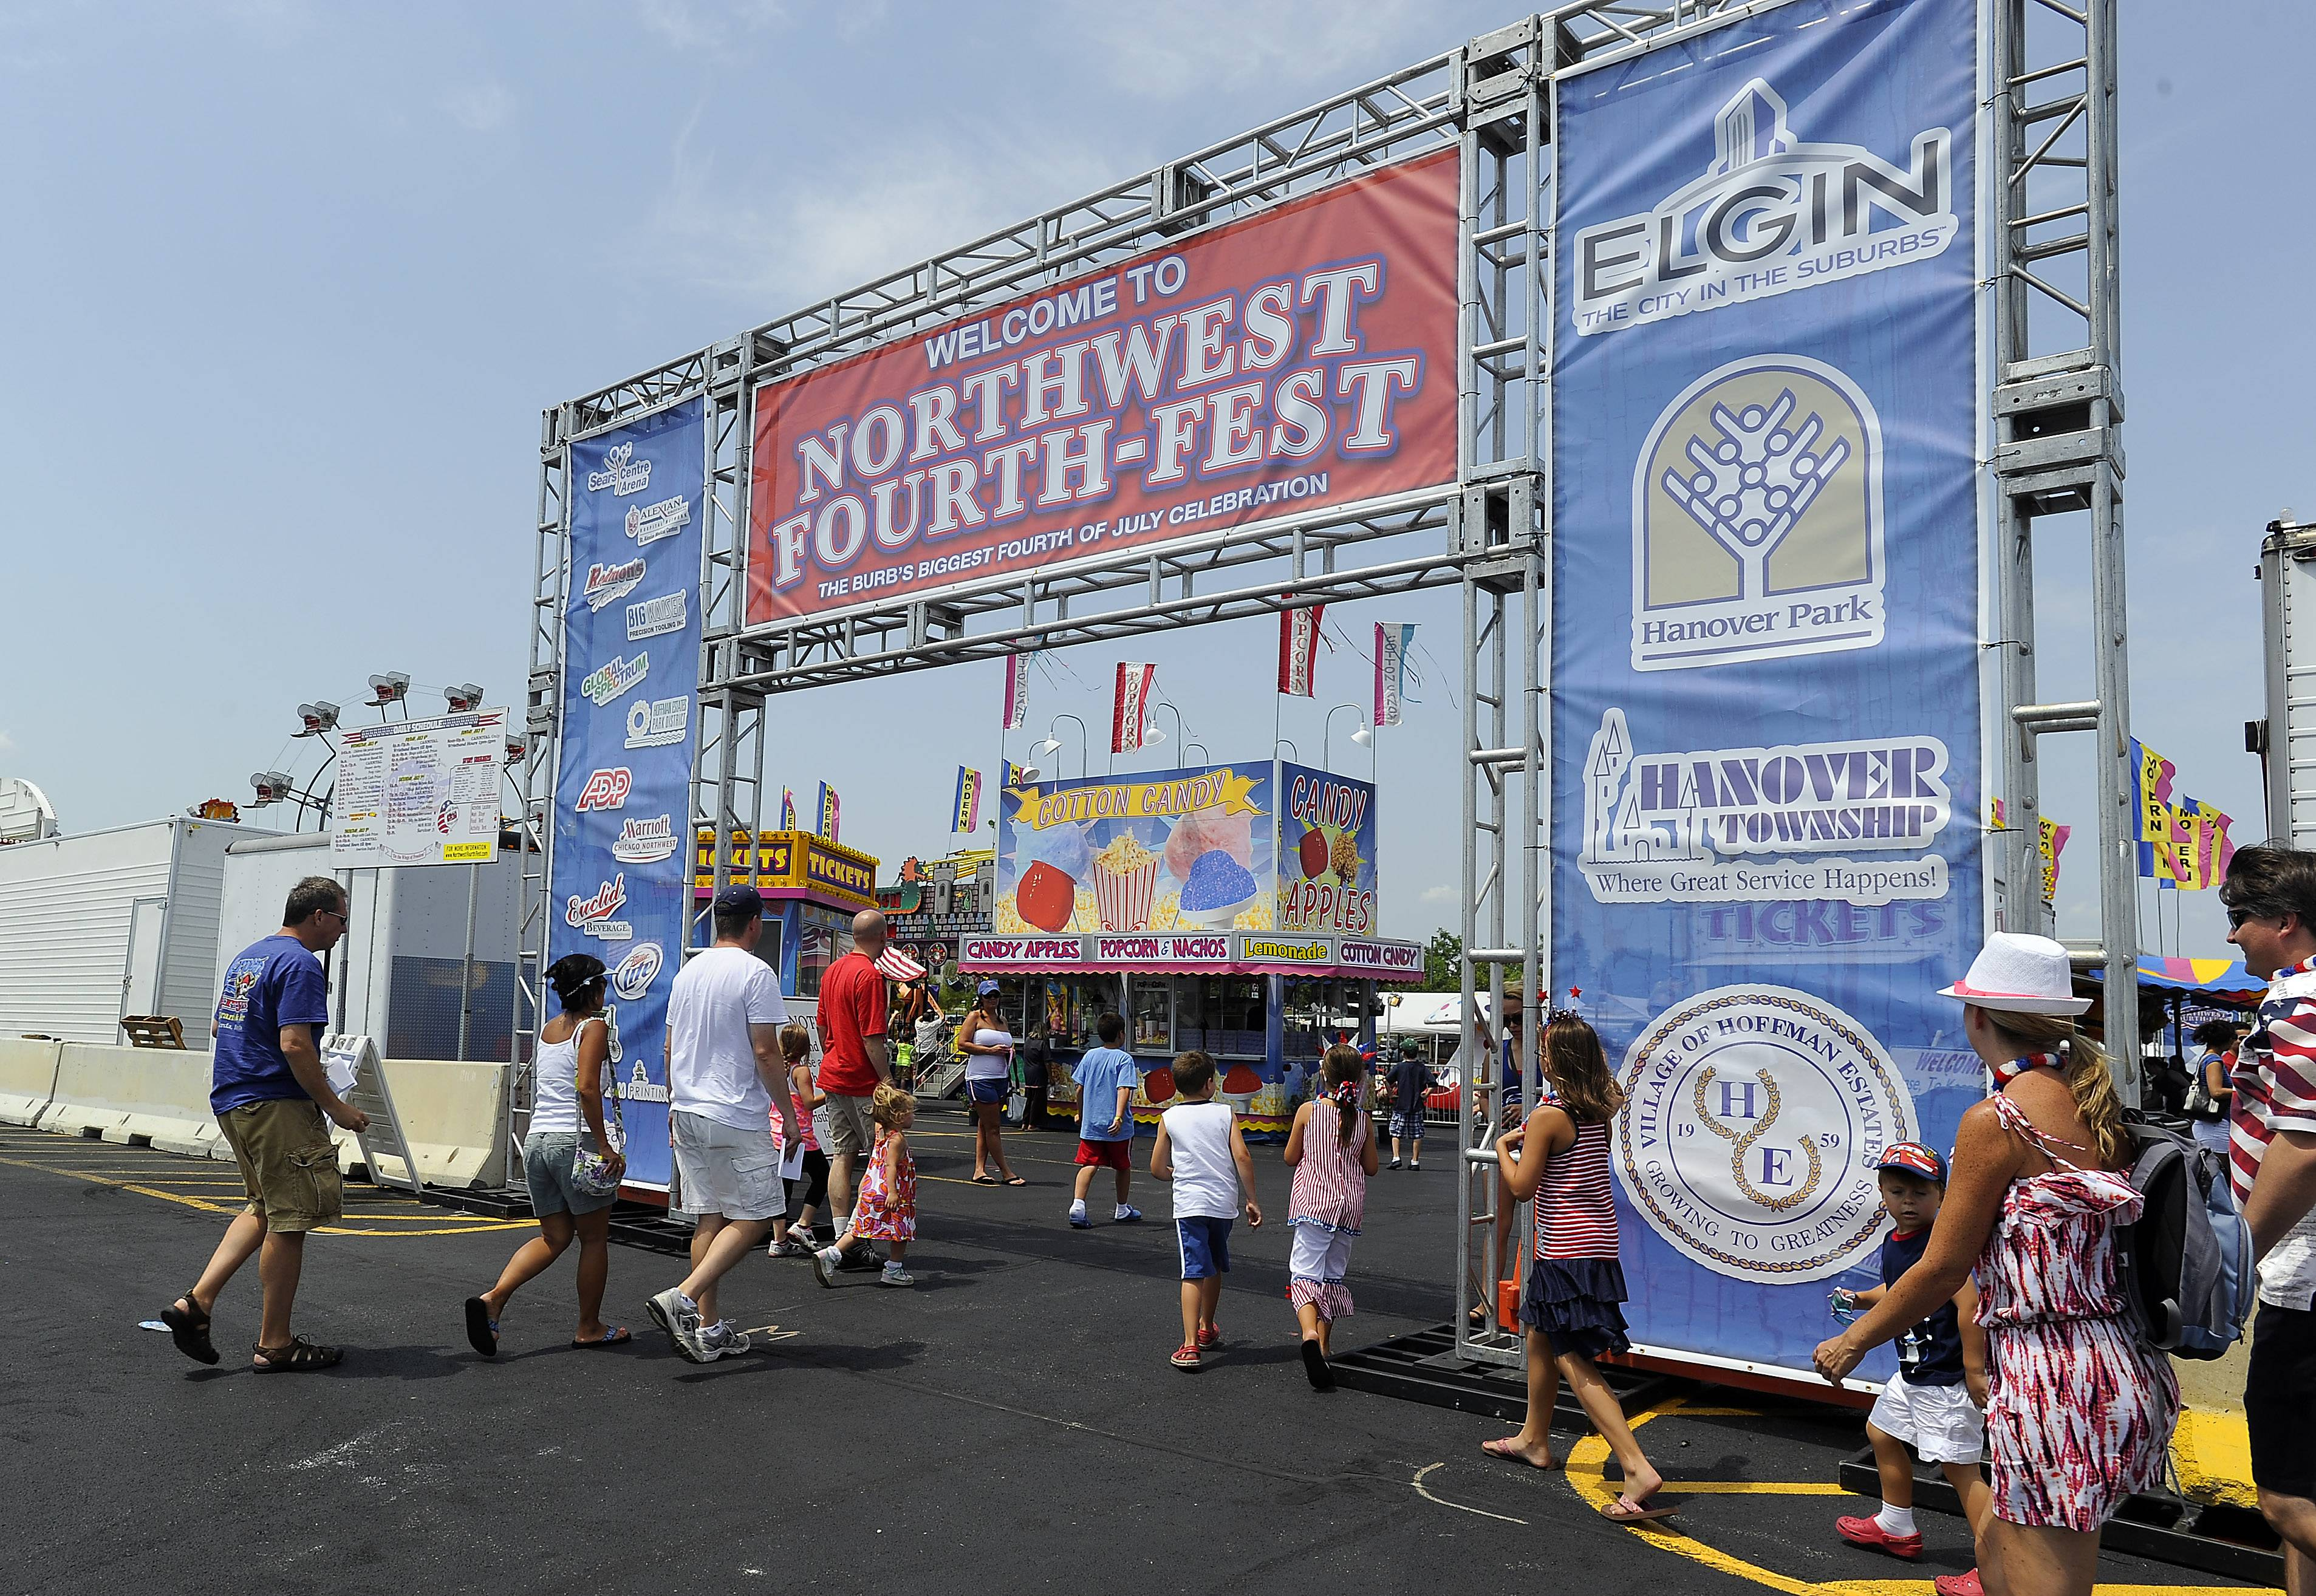 The Hoffman Estates Park District has stepped up as a co-sponsor of the four-day Northwest Fourth Fest at the Sears Centre Arena in Hoffman Estates this July, after Elgin and Hanover Park withdrew their involvement earlier this year. The district will contribute $5,000 cash and $2,000 in labor.